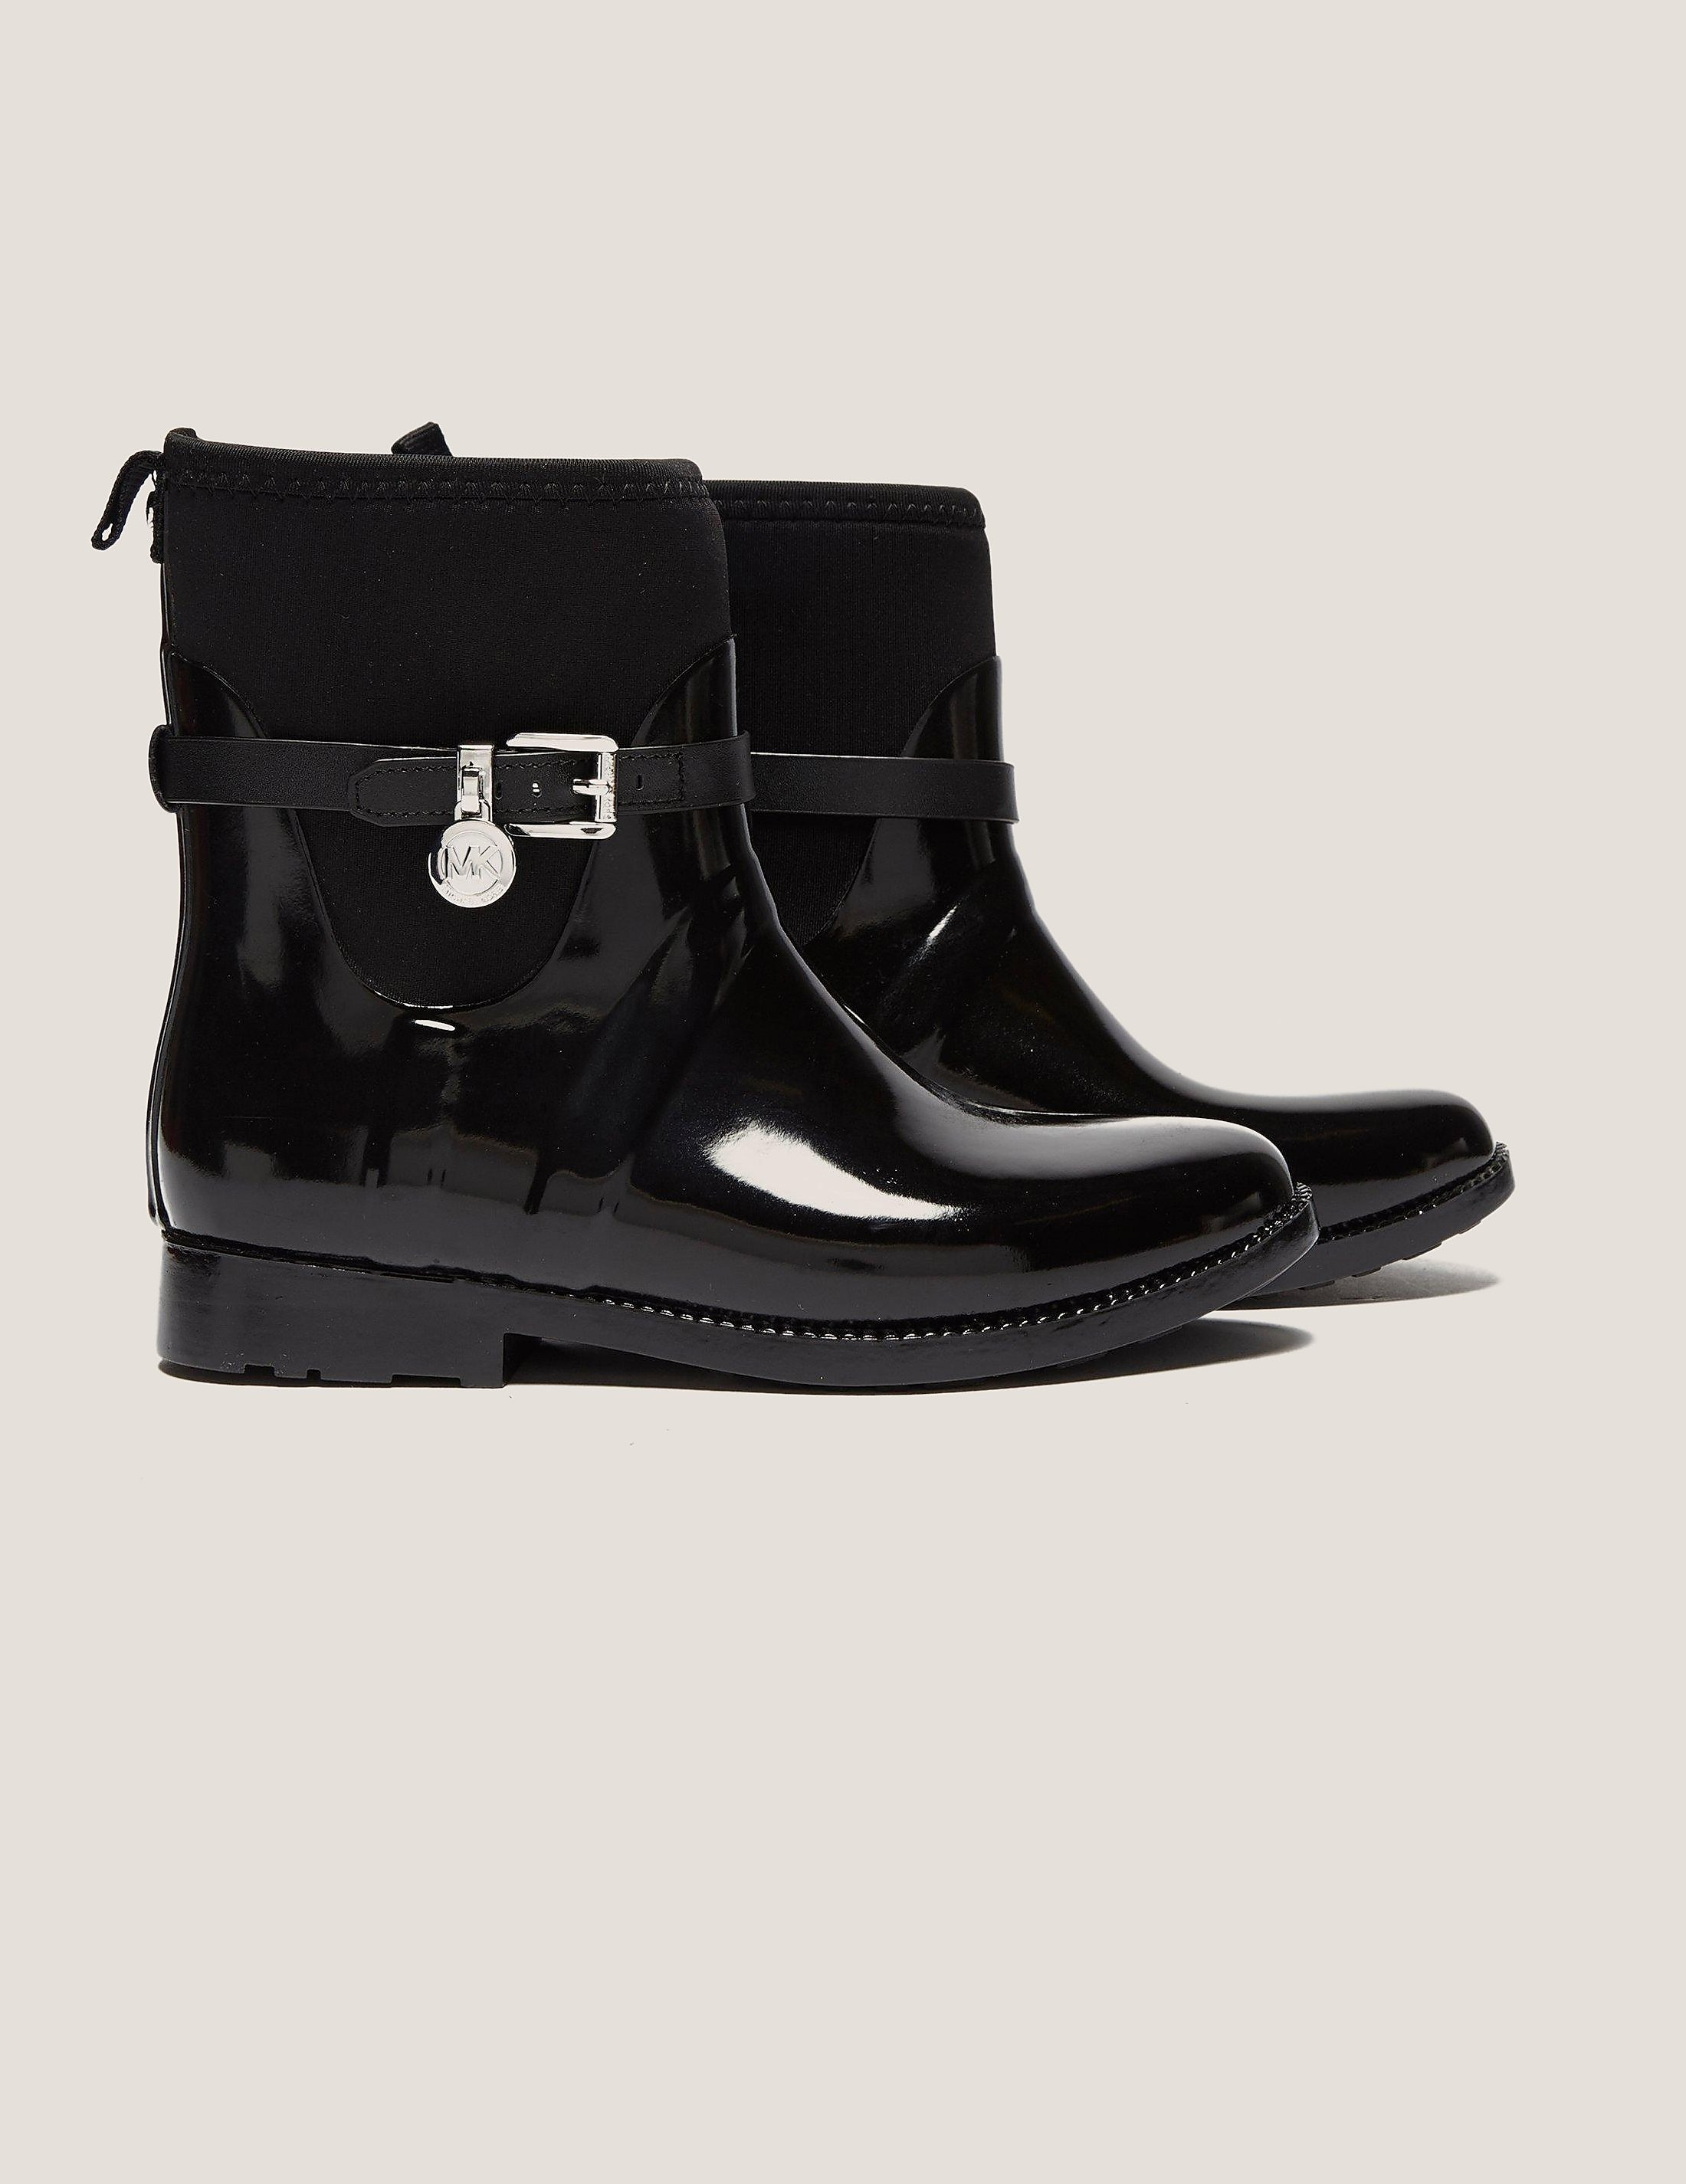 Michael Kors Charm Stretch RainBootie